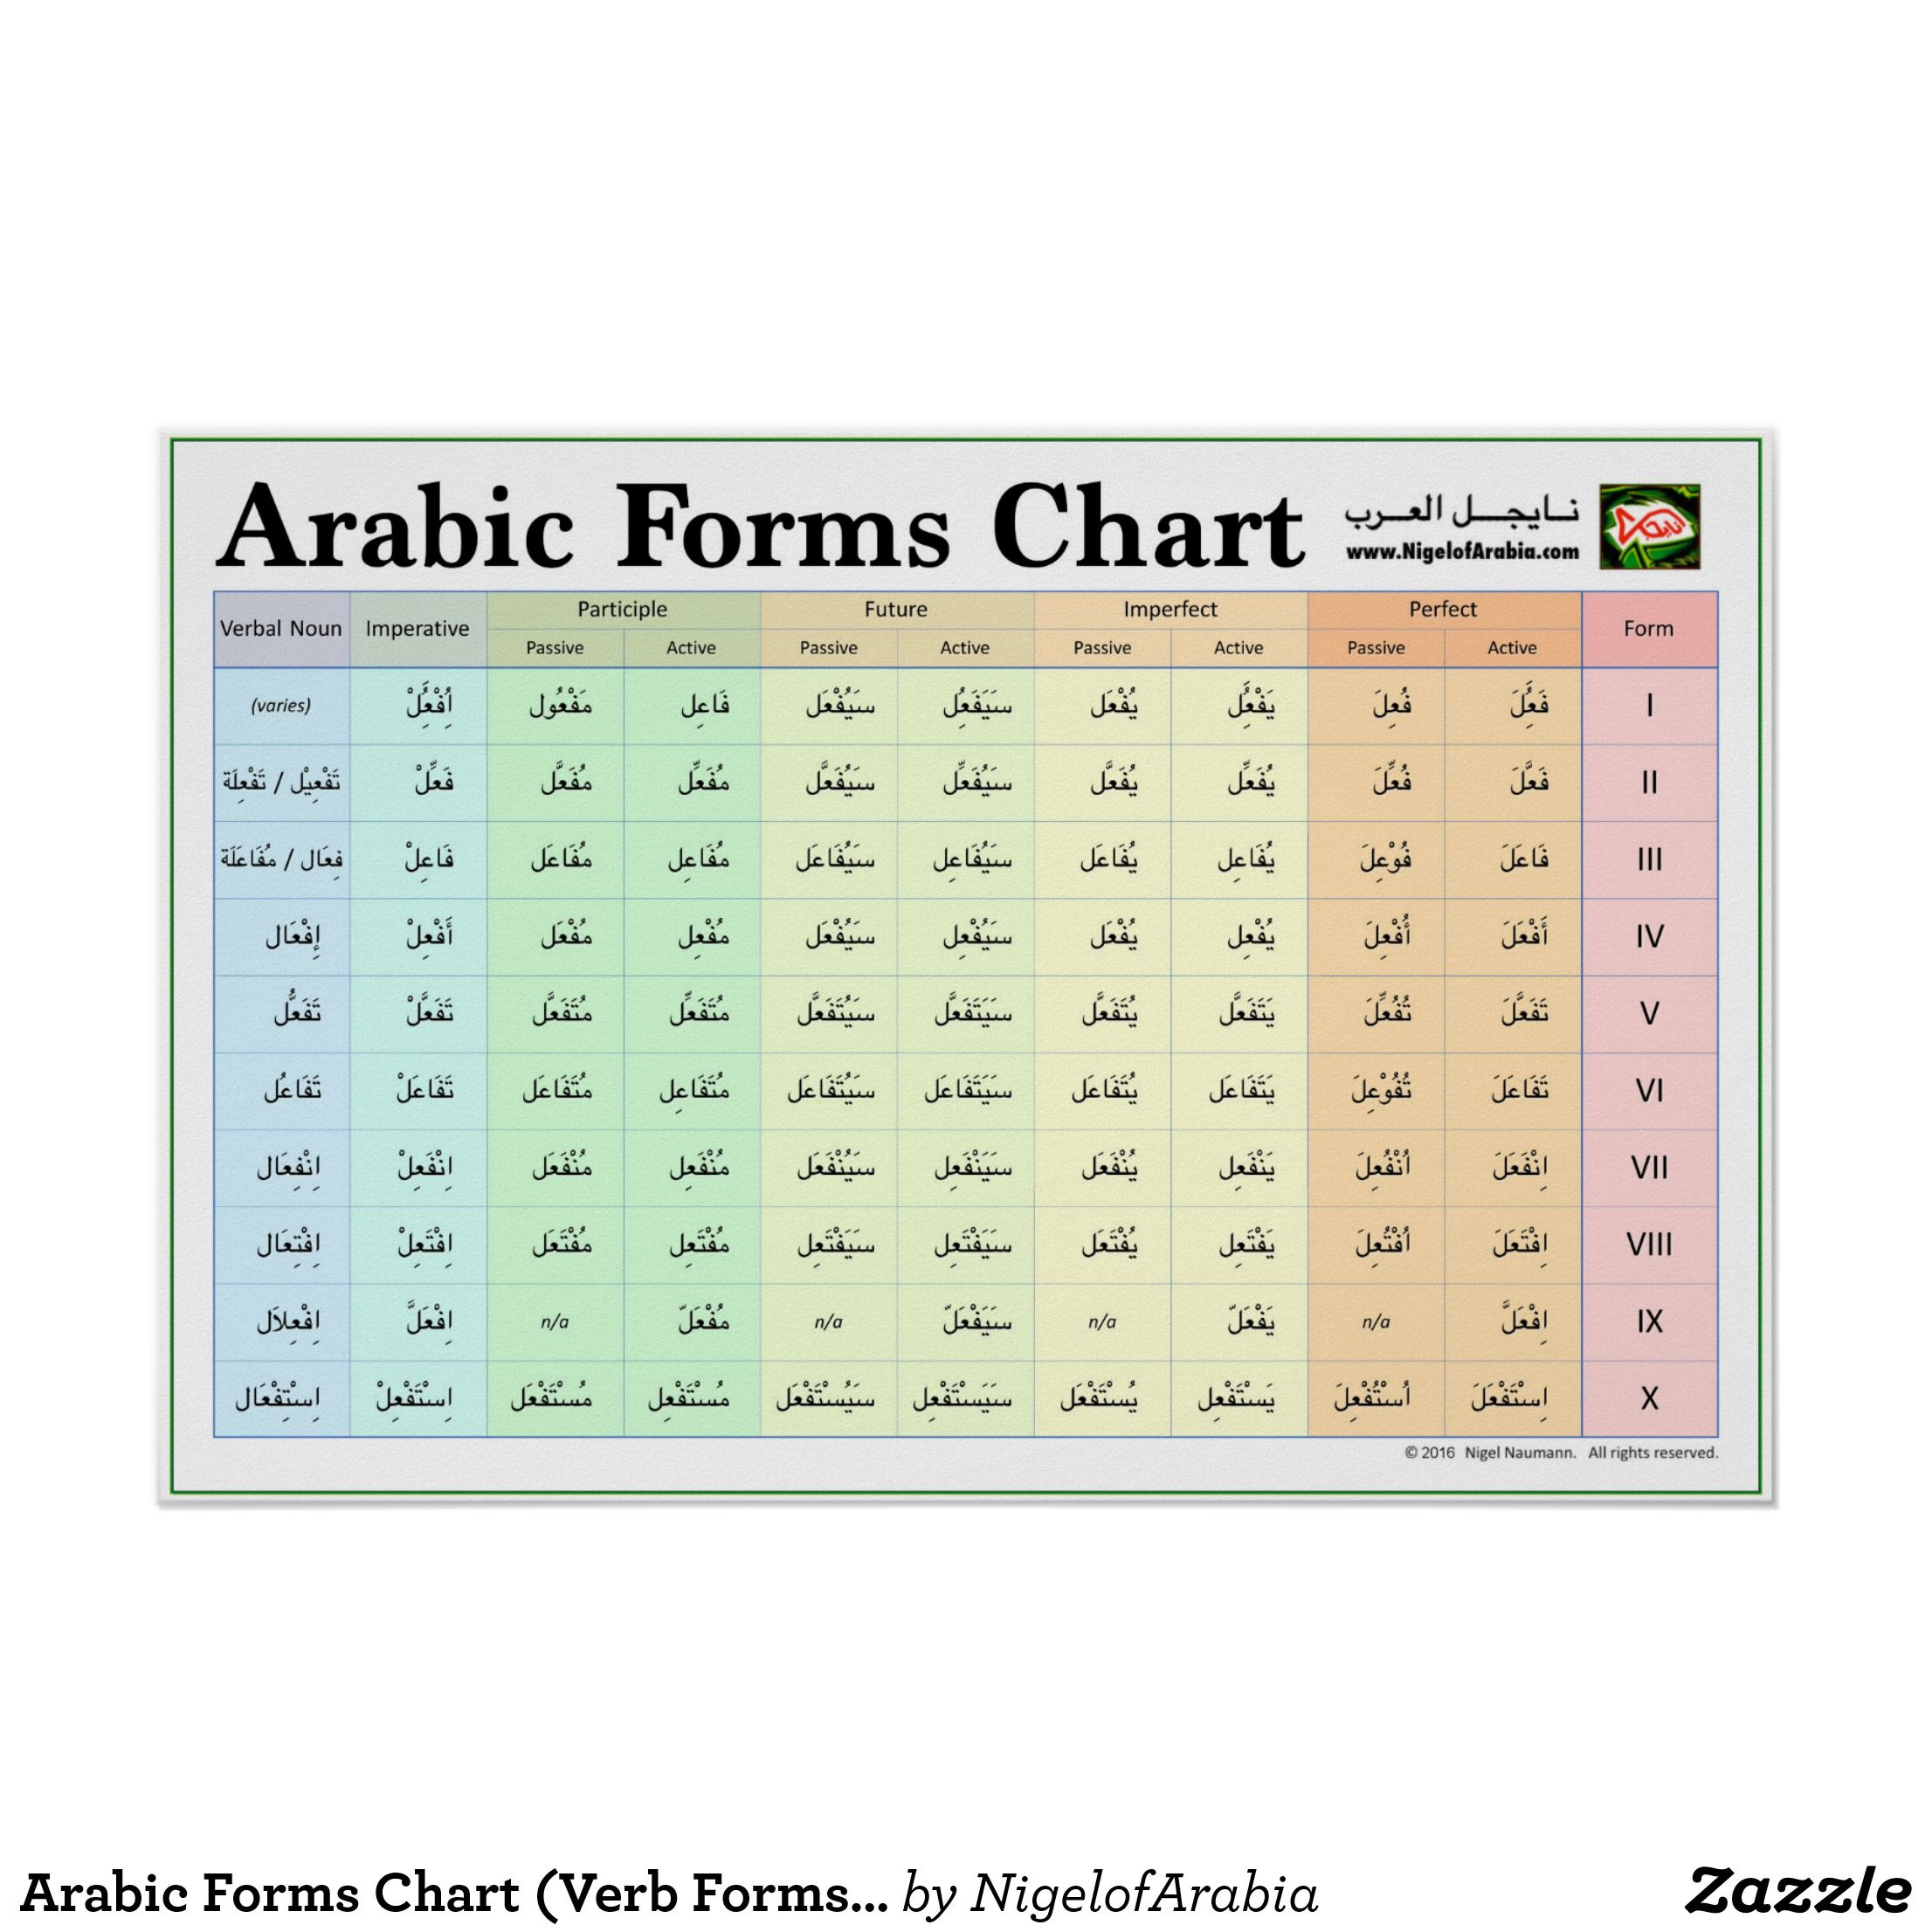 Arabic Forms Chart Verb Forms I X